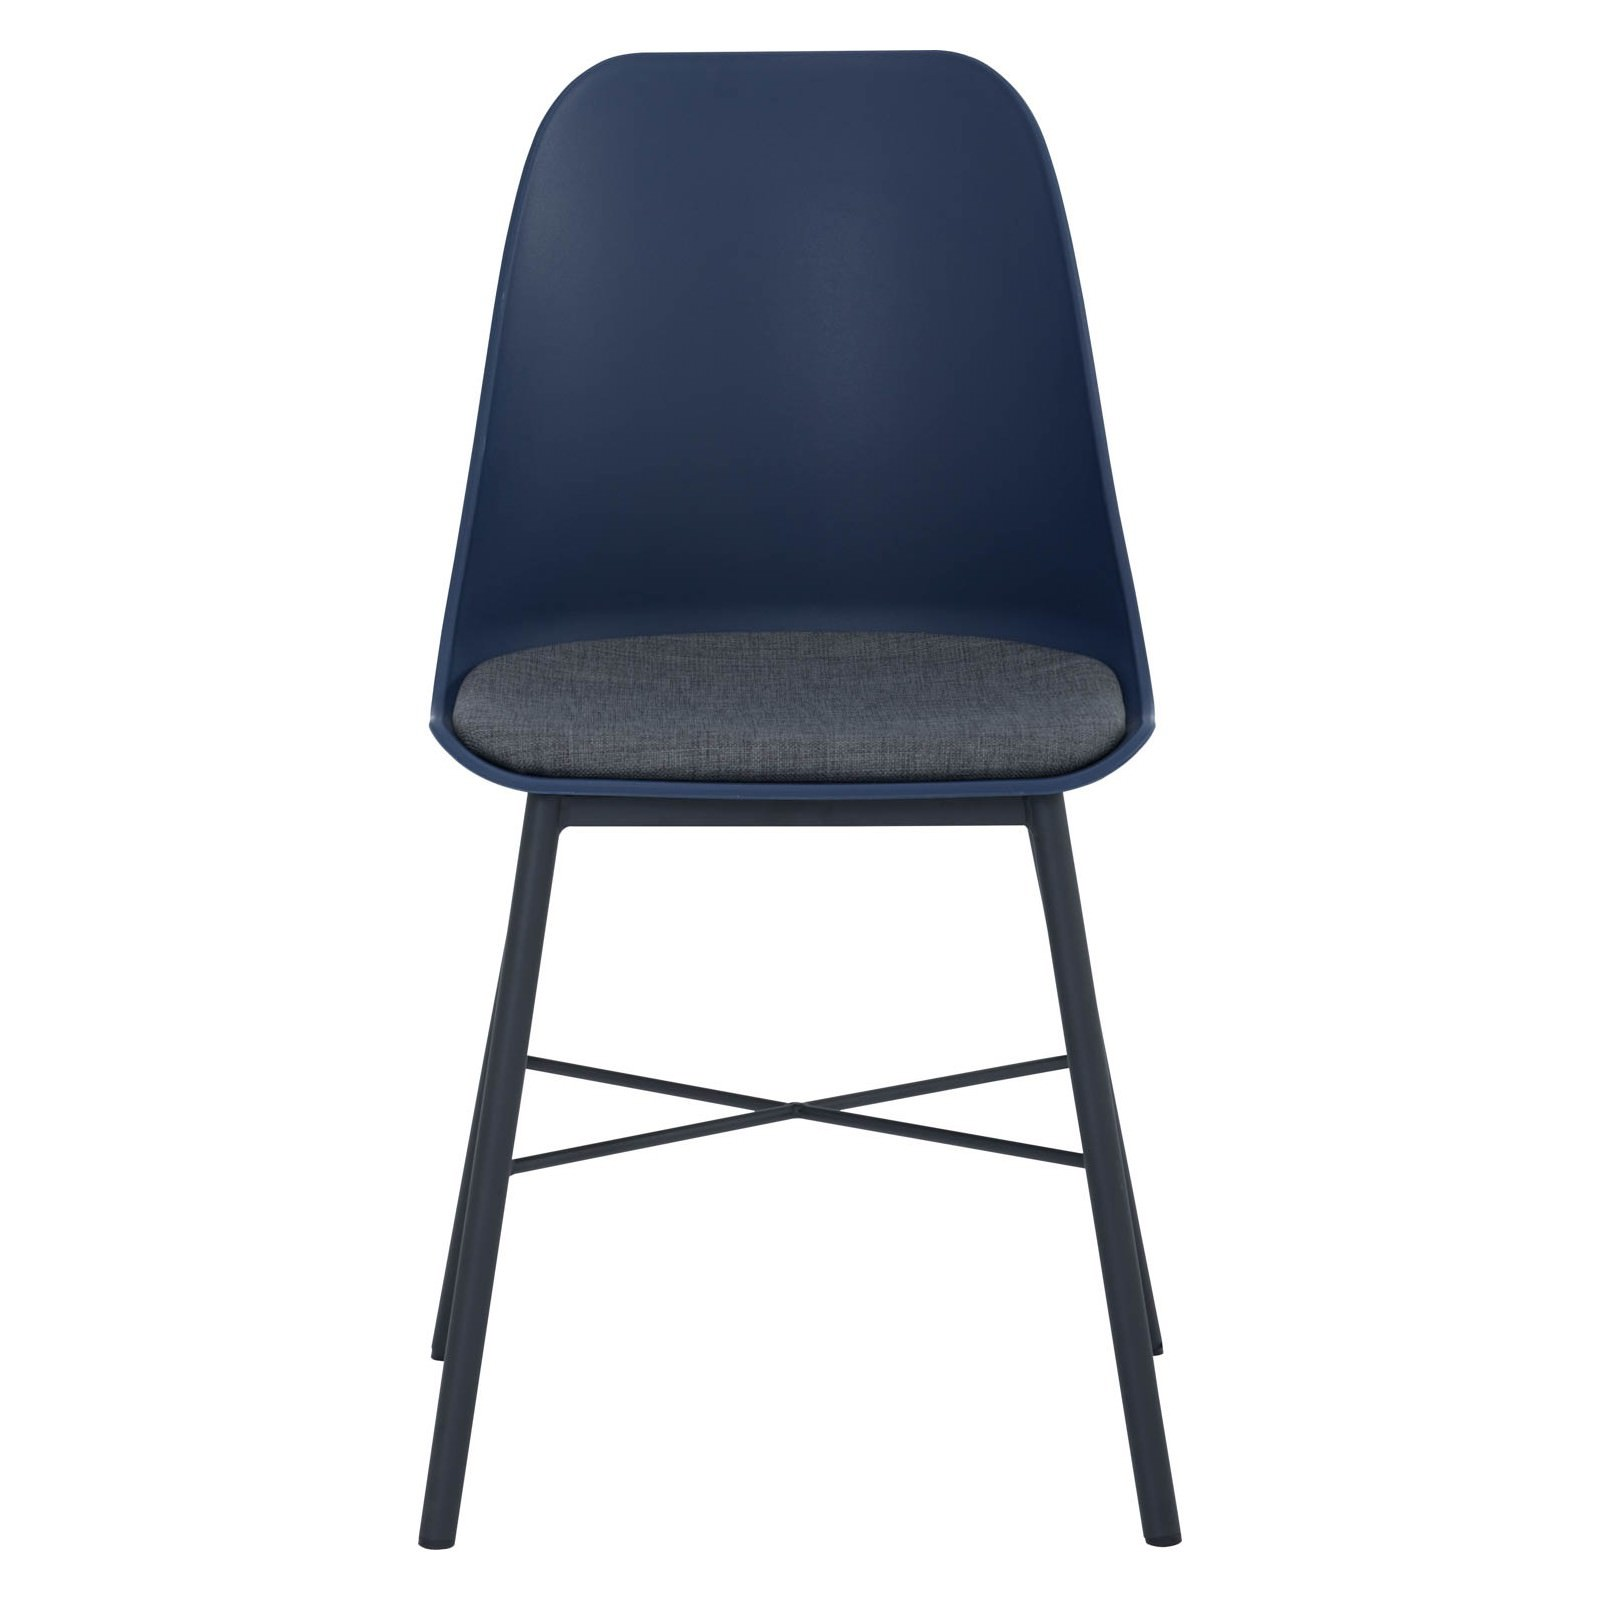 Laxmi Commercial Grade Dining Chair, Navy